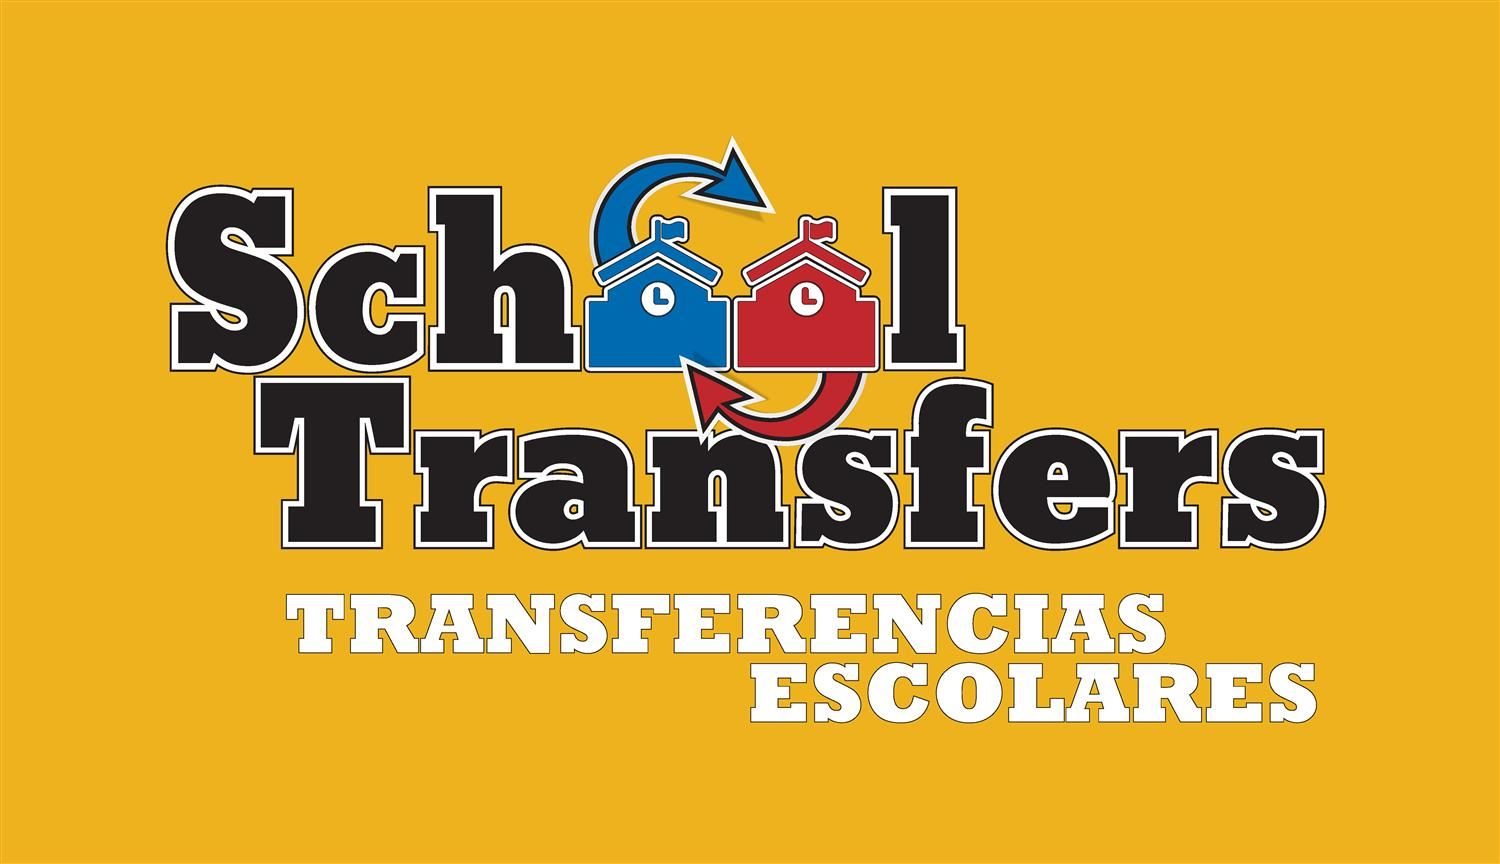 2021-2022 transfer request window open now through May 31